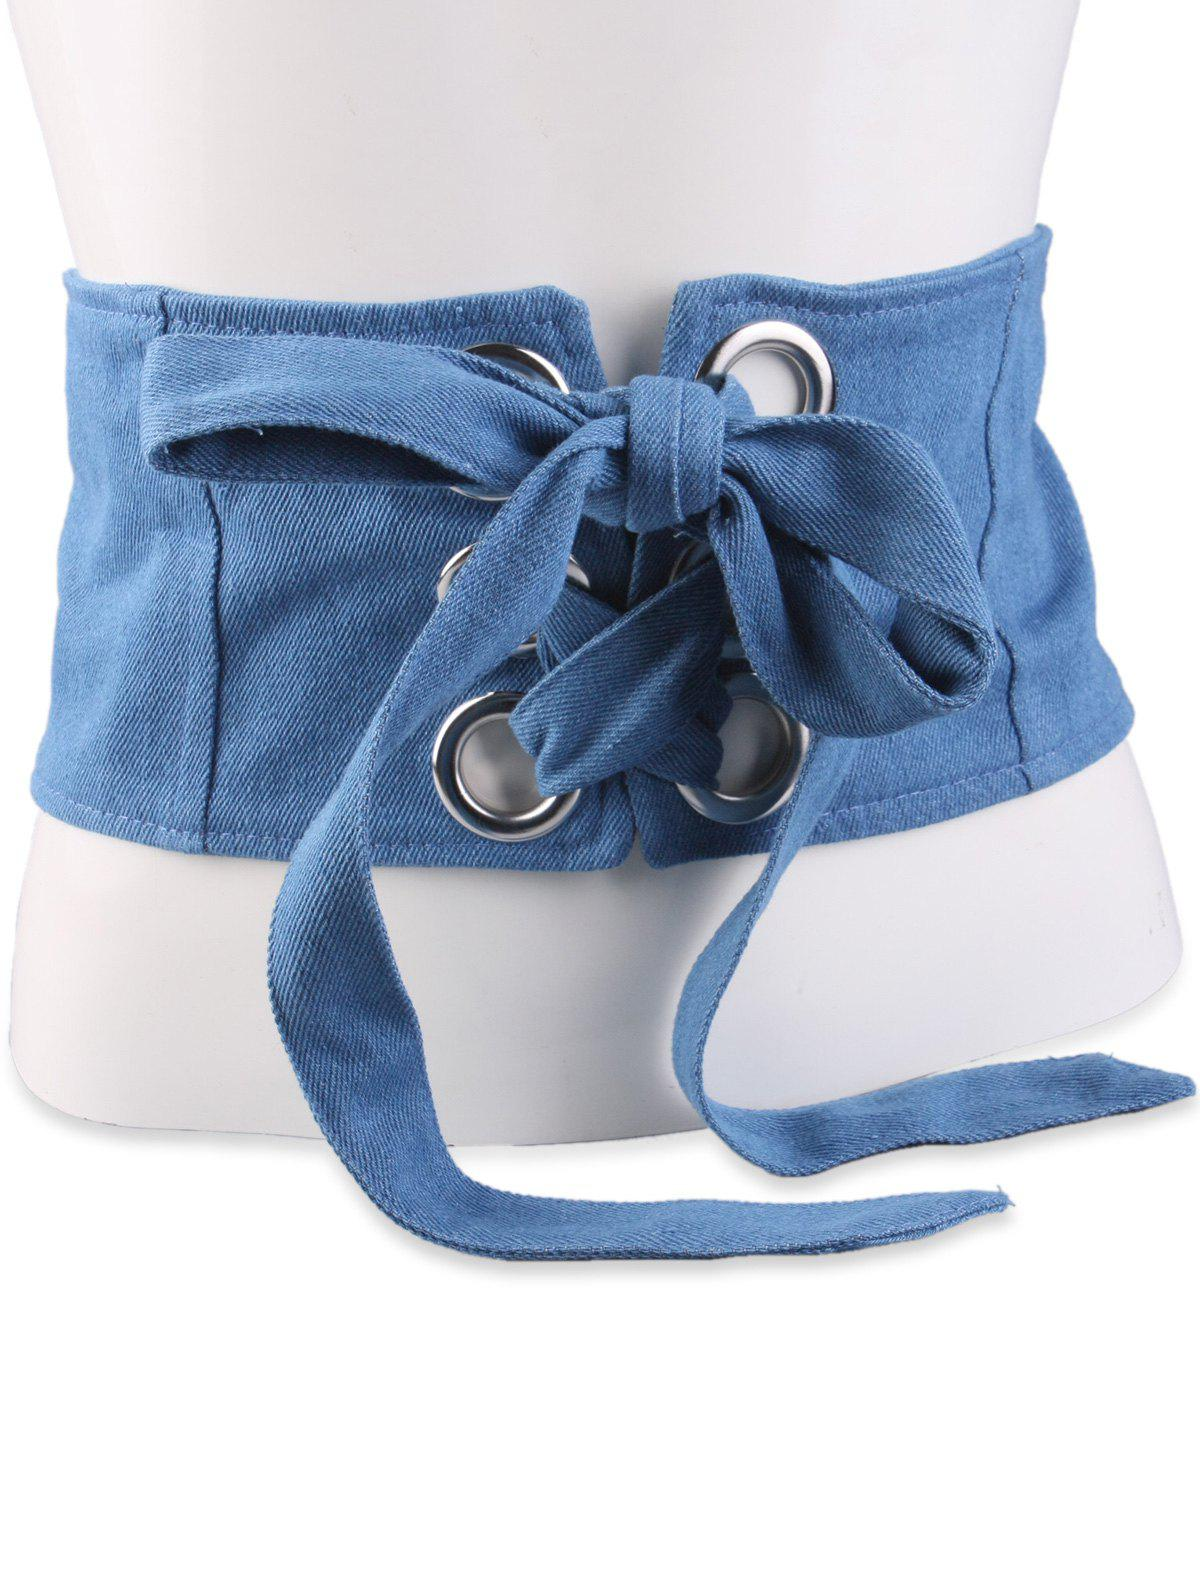 Wide Snap Button Aimant Corset Belt - Bleu clair